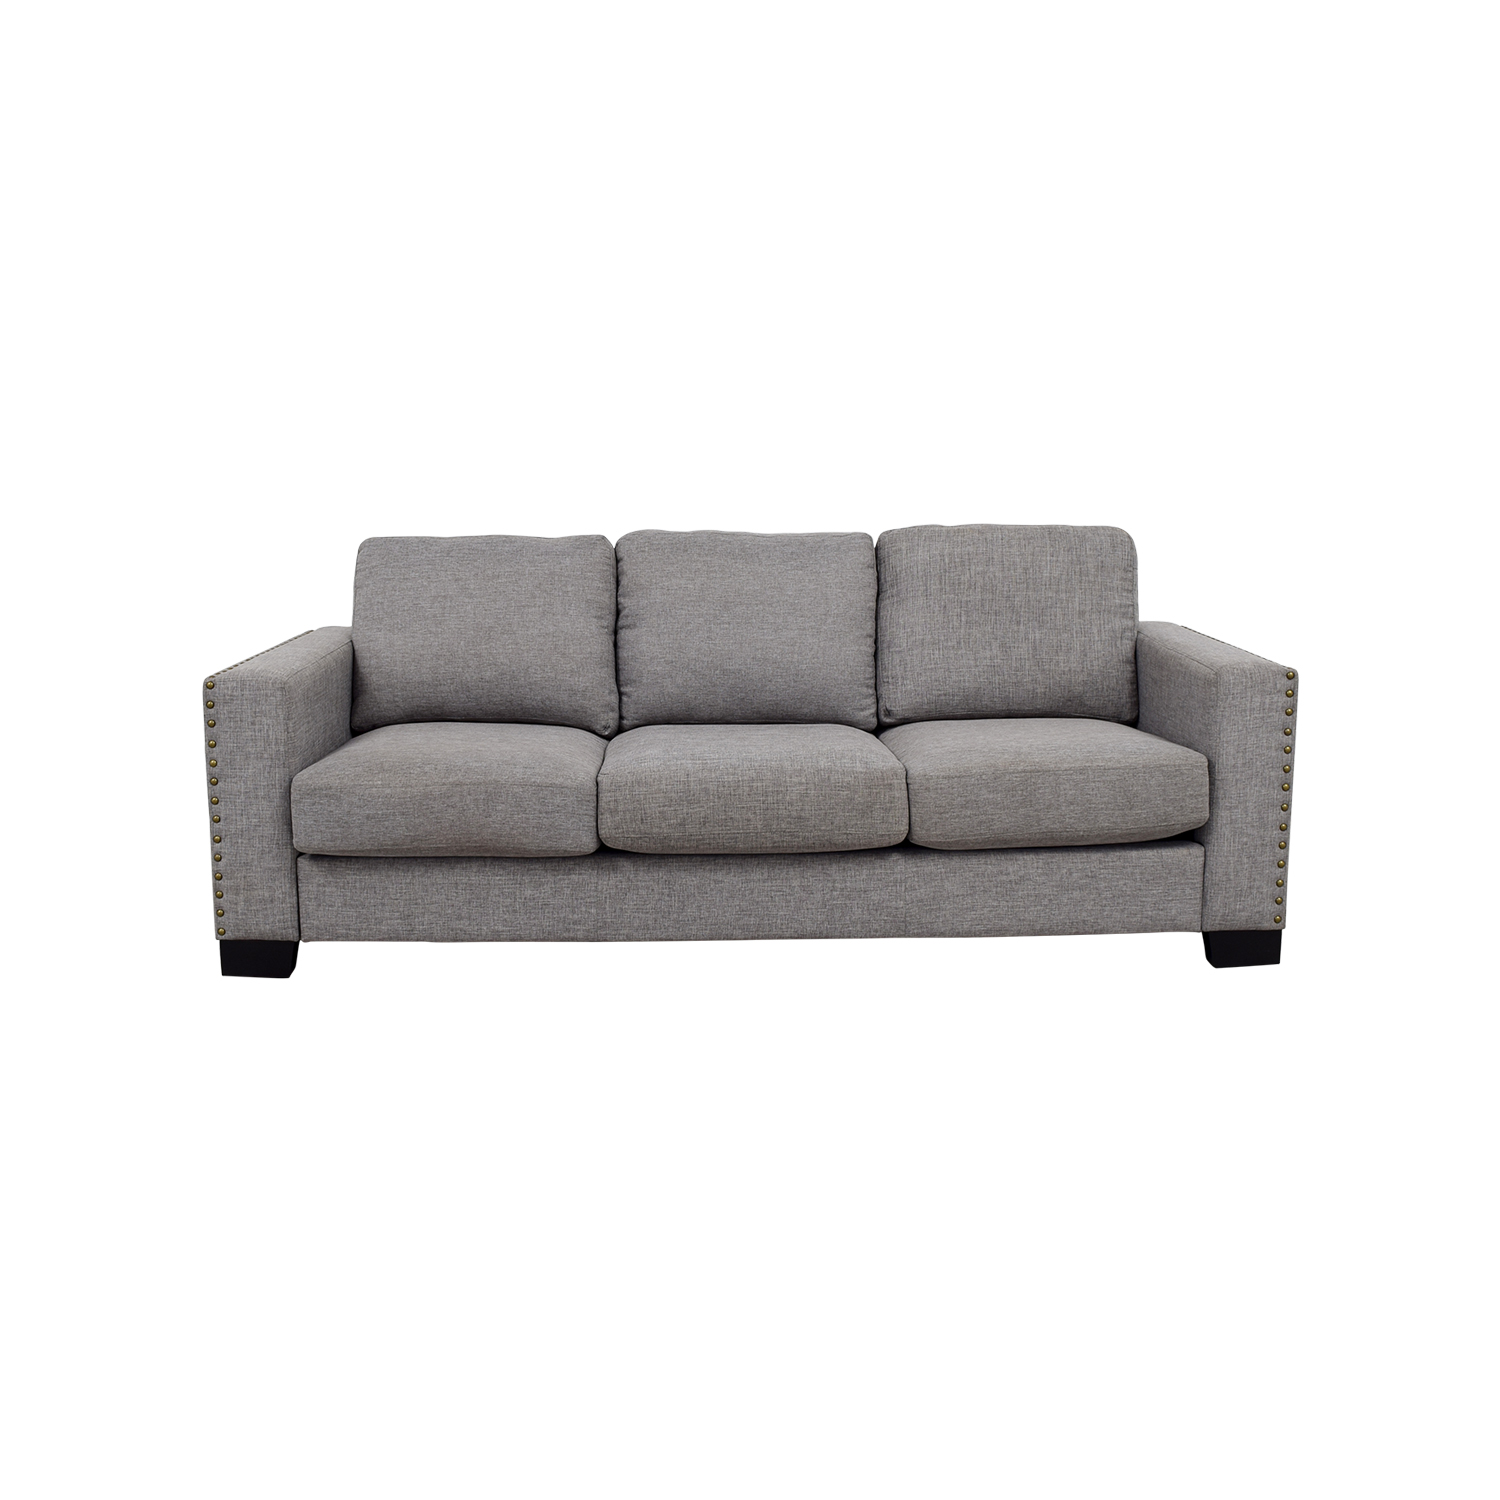 INSPIRE Q INSPIRE Q Grey Linen Nailhead Track Arm Sofa for sale ...